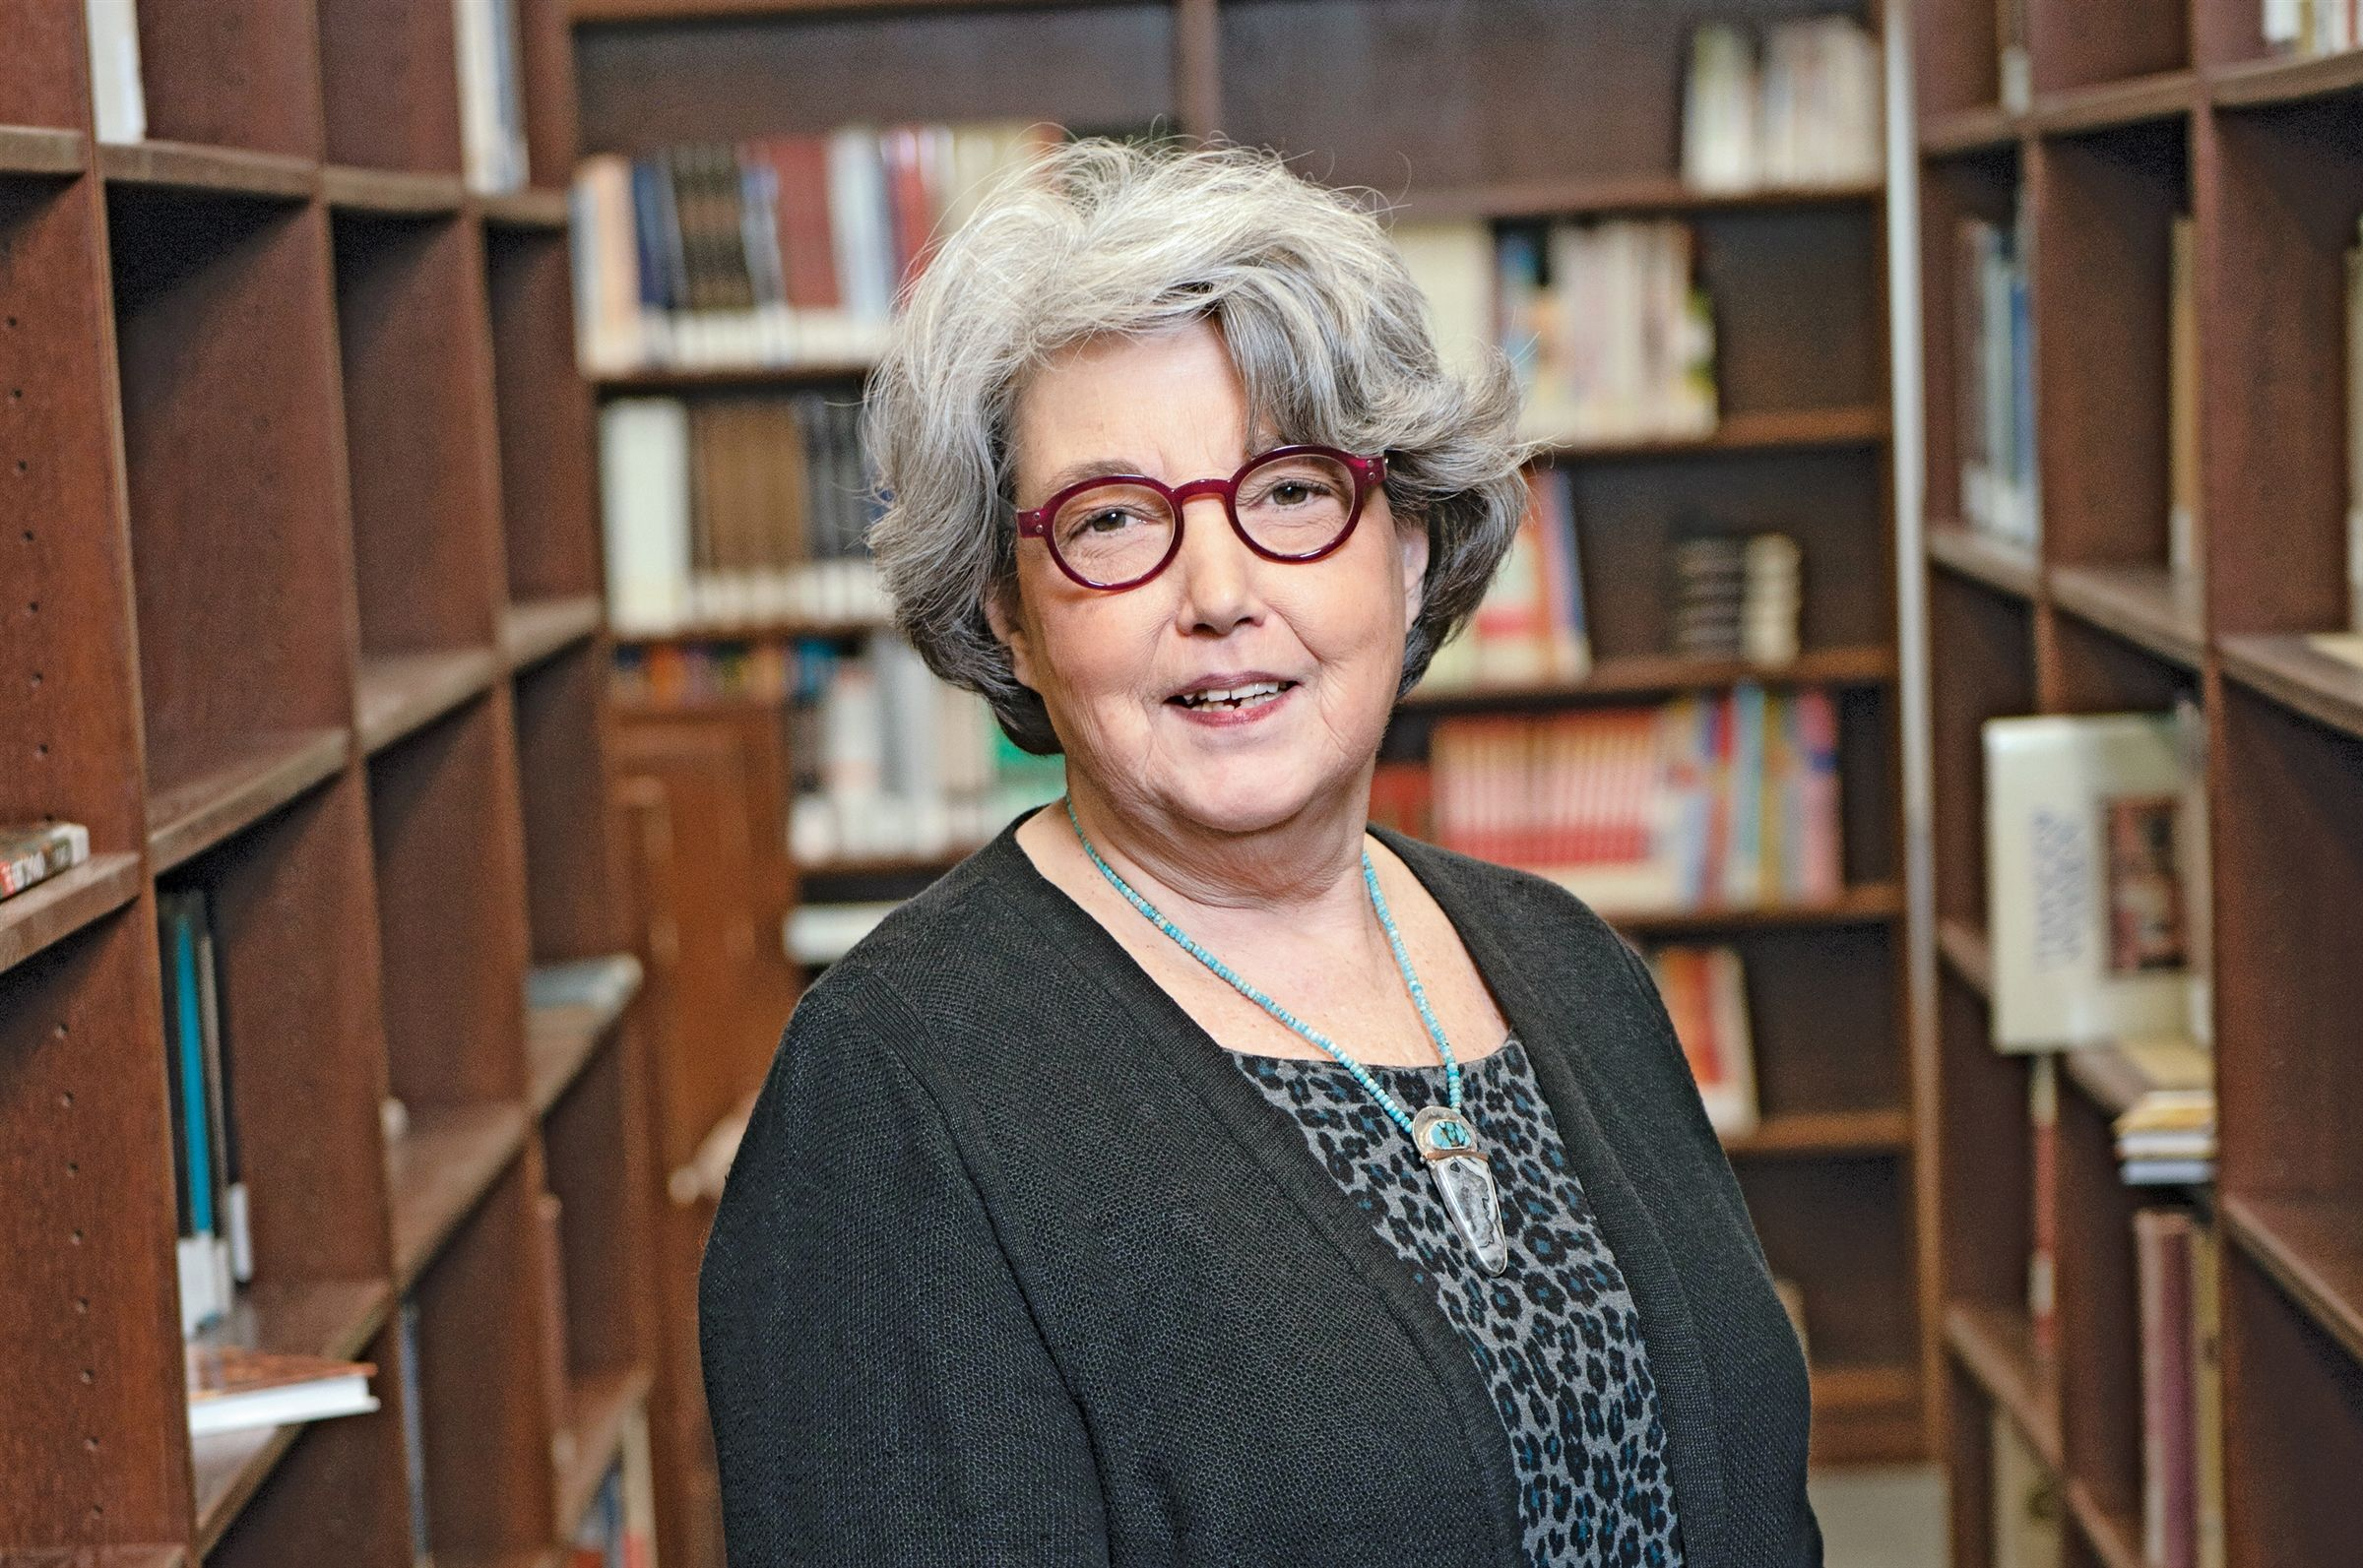 "For 50 years, Laurie Stanton shared her joy of learning with others at Hutchison as a teacher, and then as a school administrator. But before that she was a student here too.<br> <br><a class=""button"" href=""https://www.hutchisonschool.org/page/alumnae-news-detail?pk=1104917"">Read Her Story</a>"